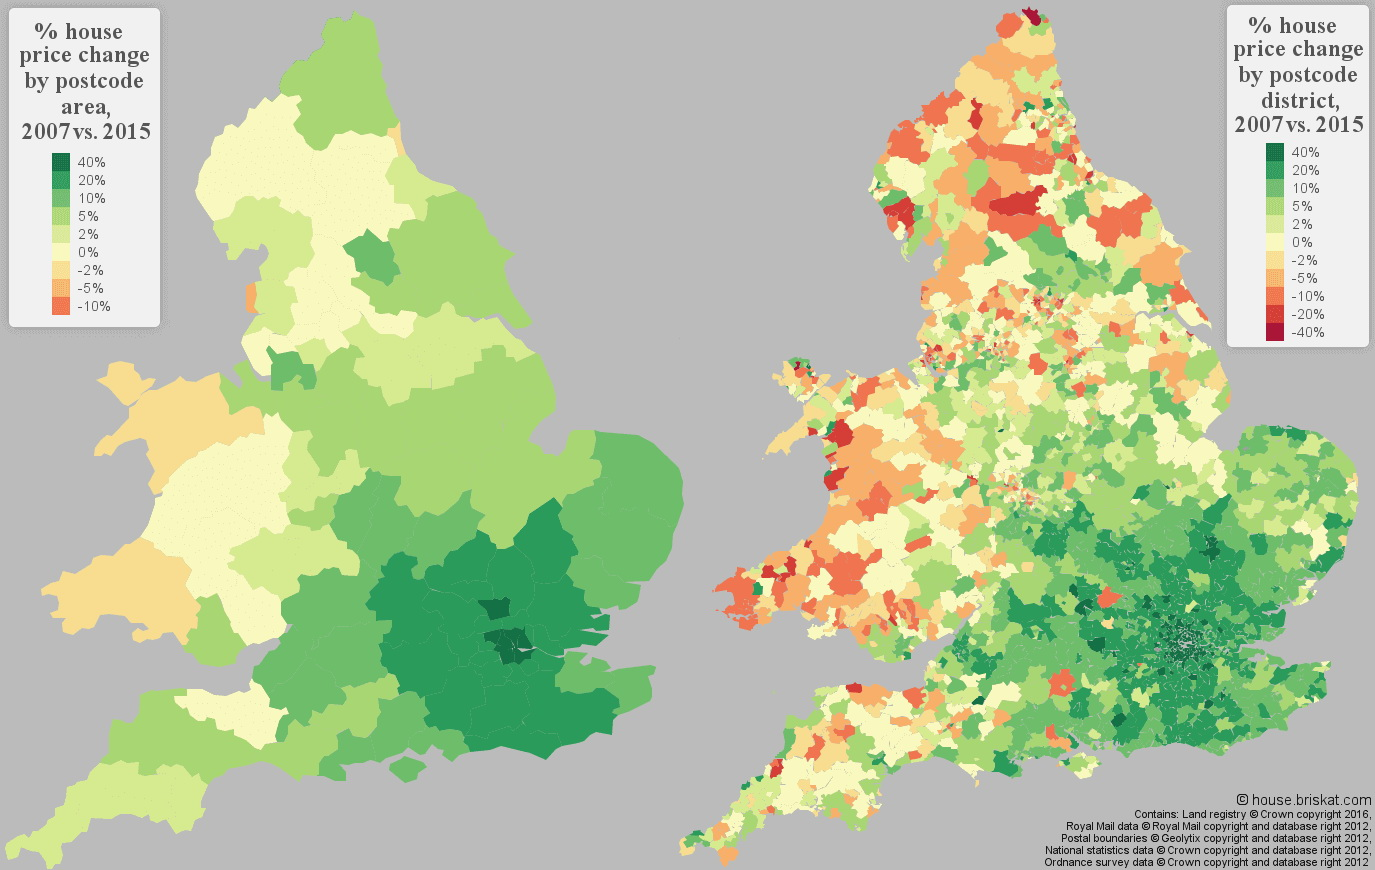 % house price change in England & Wales (2007 vs 2015)